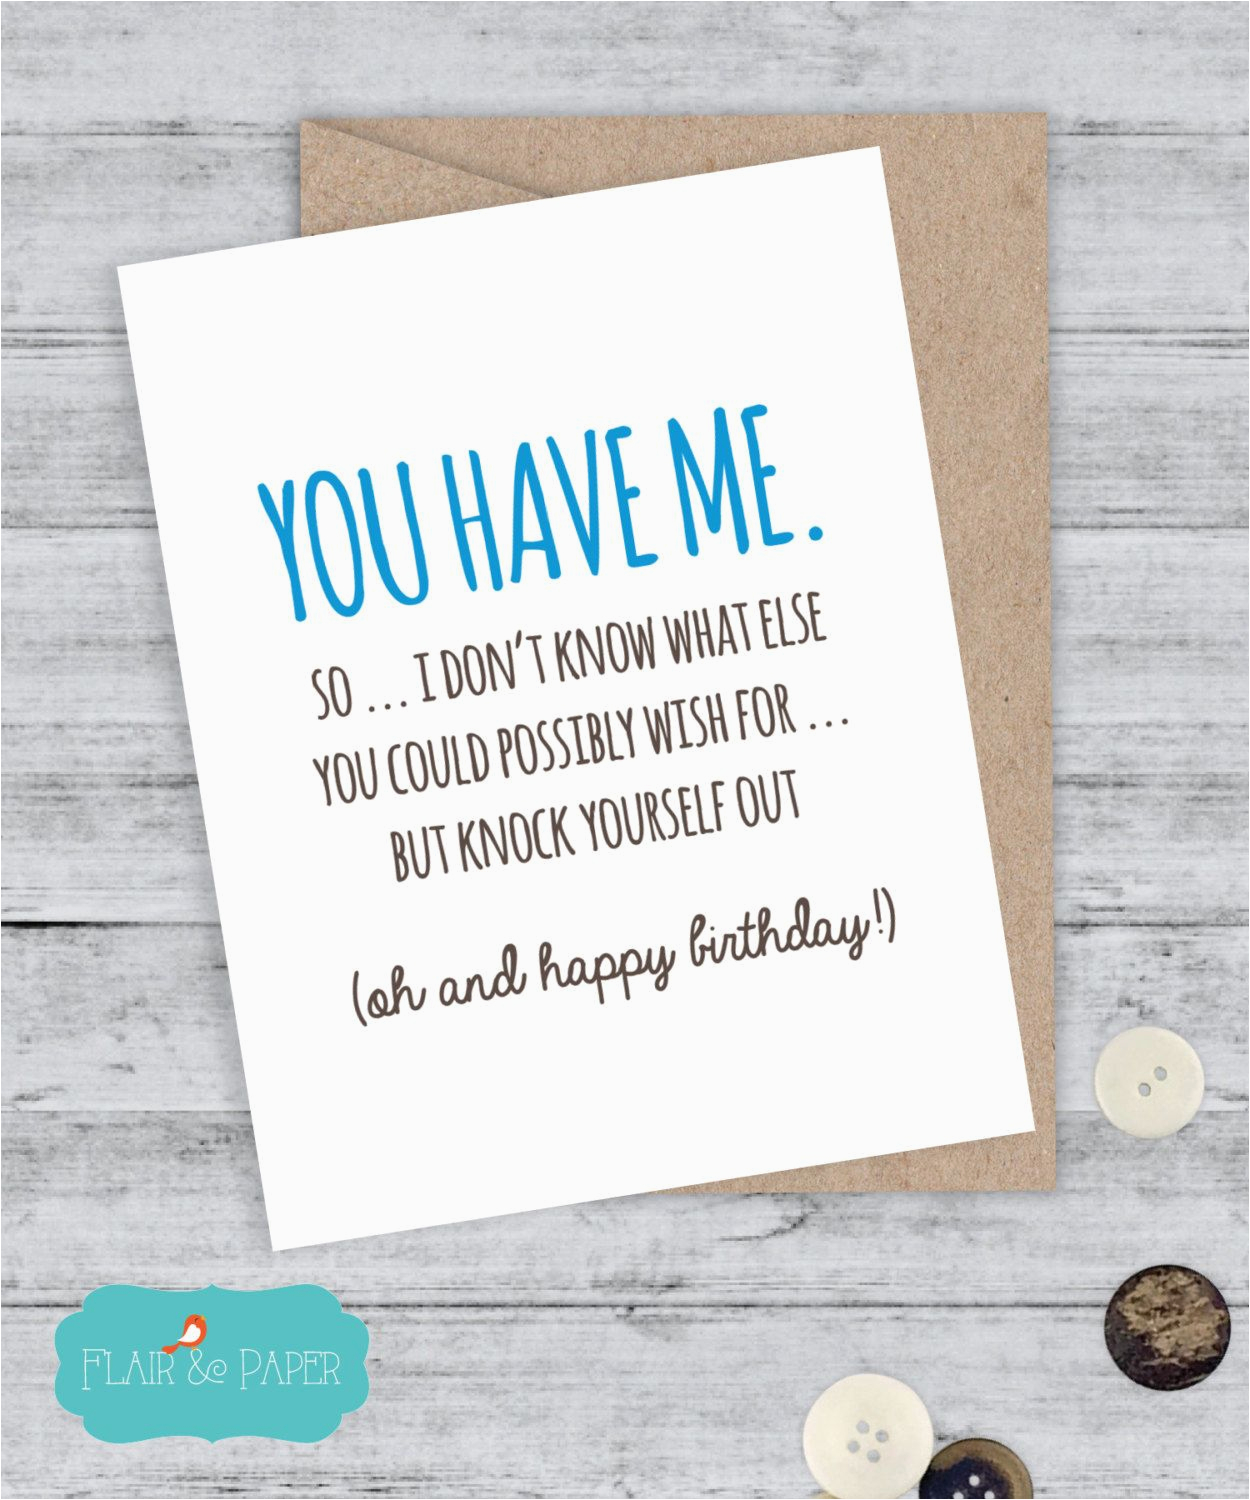 Boyfriend Birthday Card Hallmark How Write Wishes What Wording For